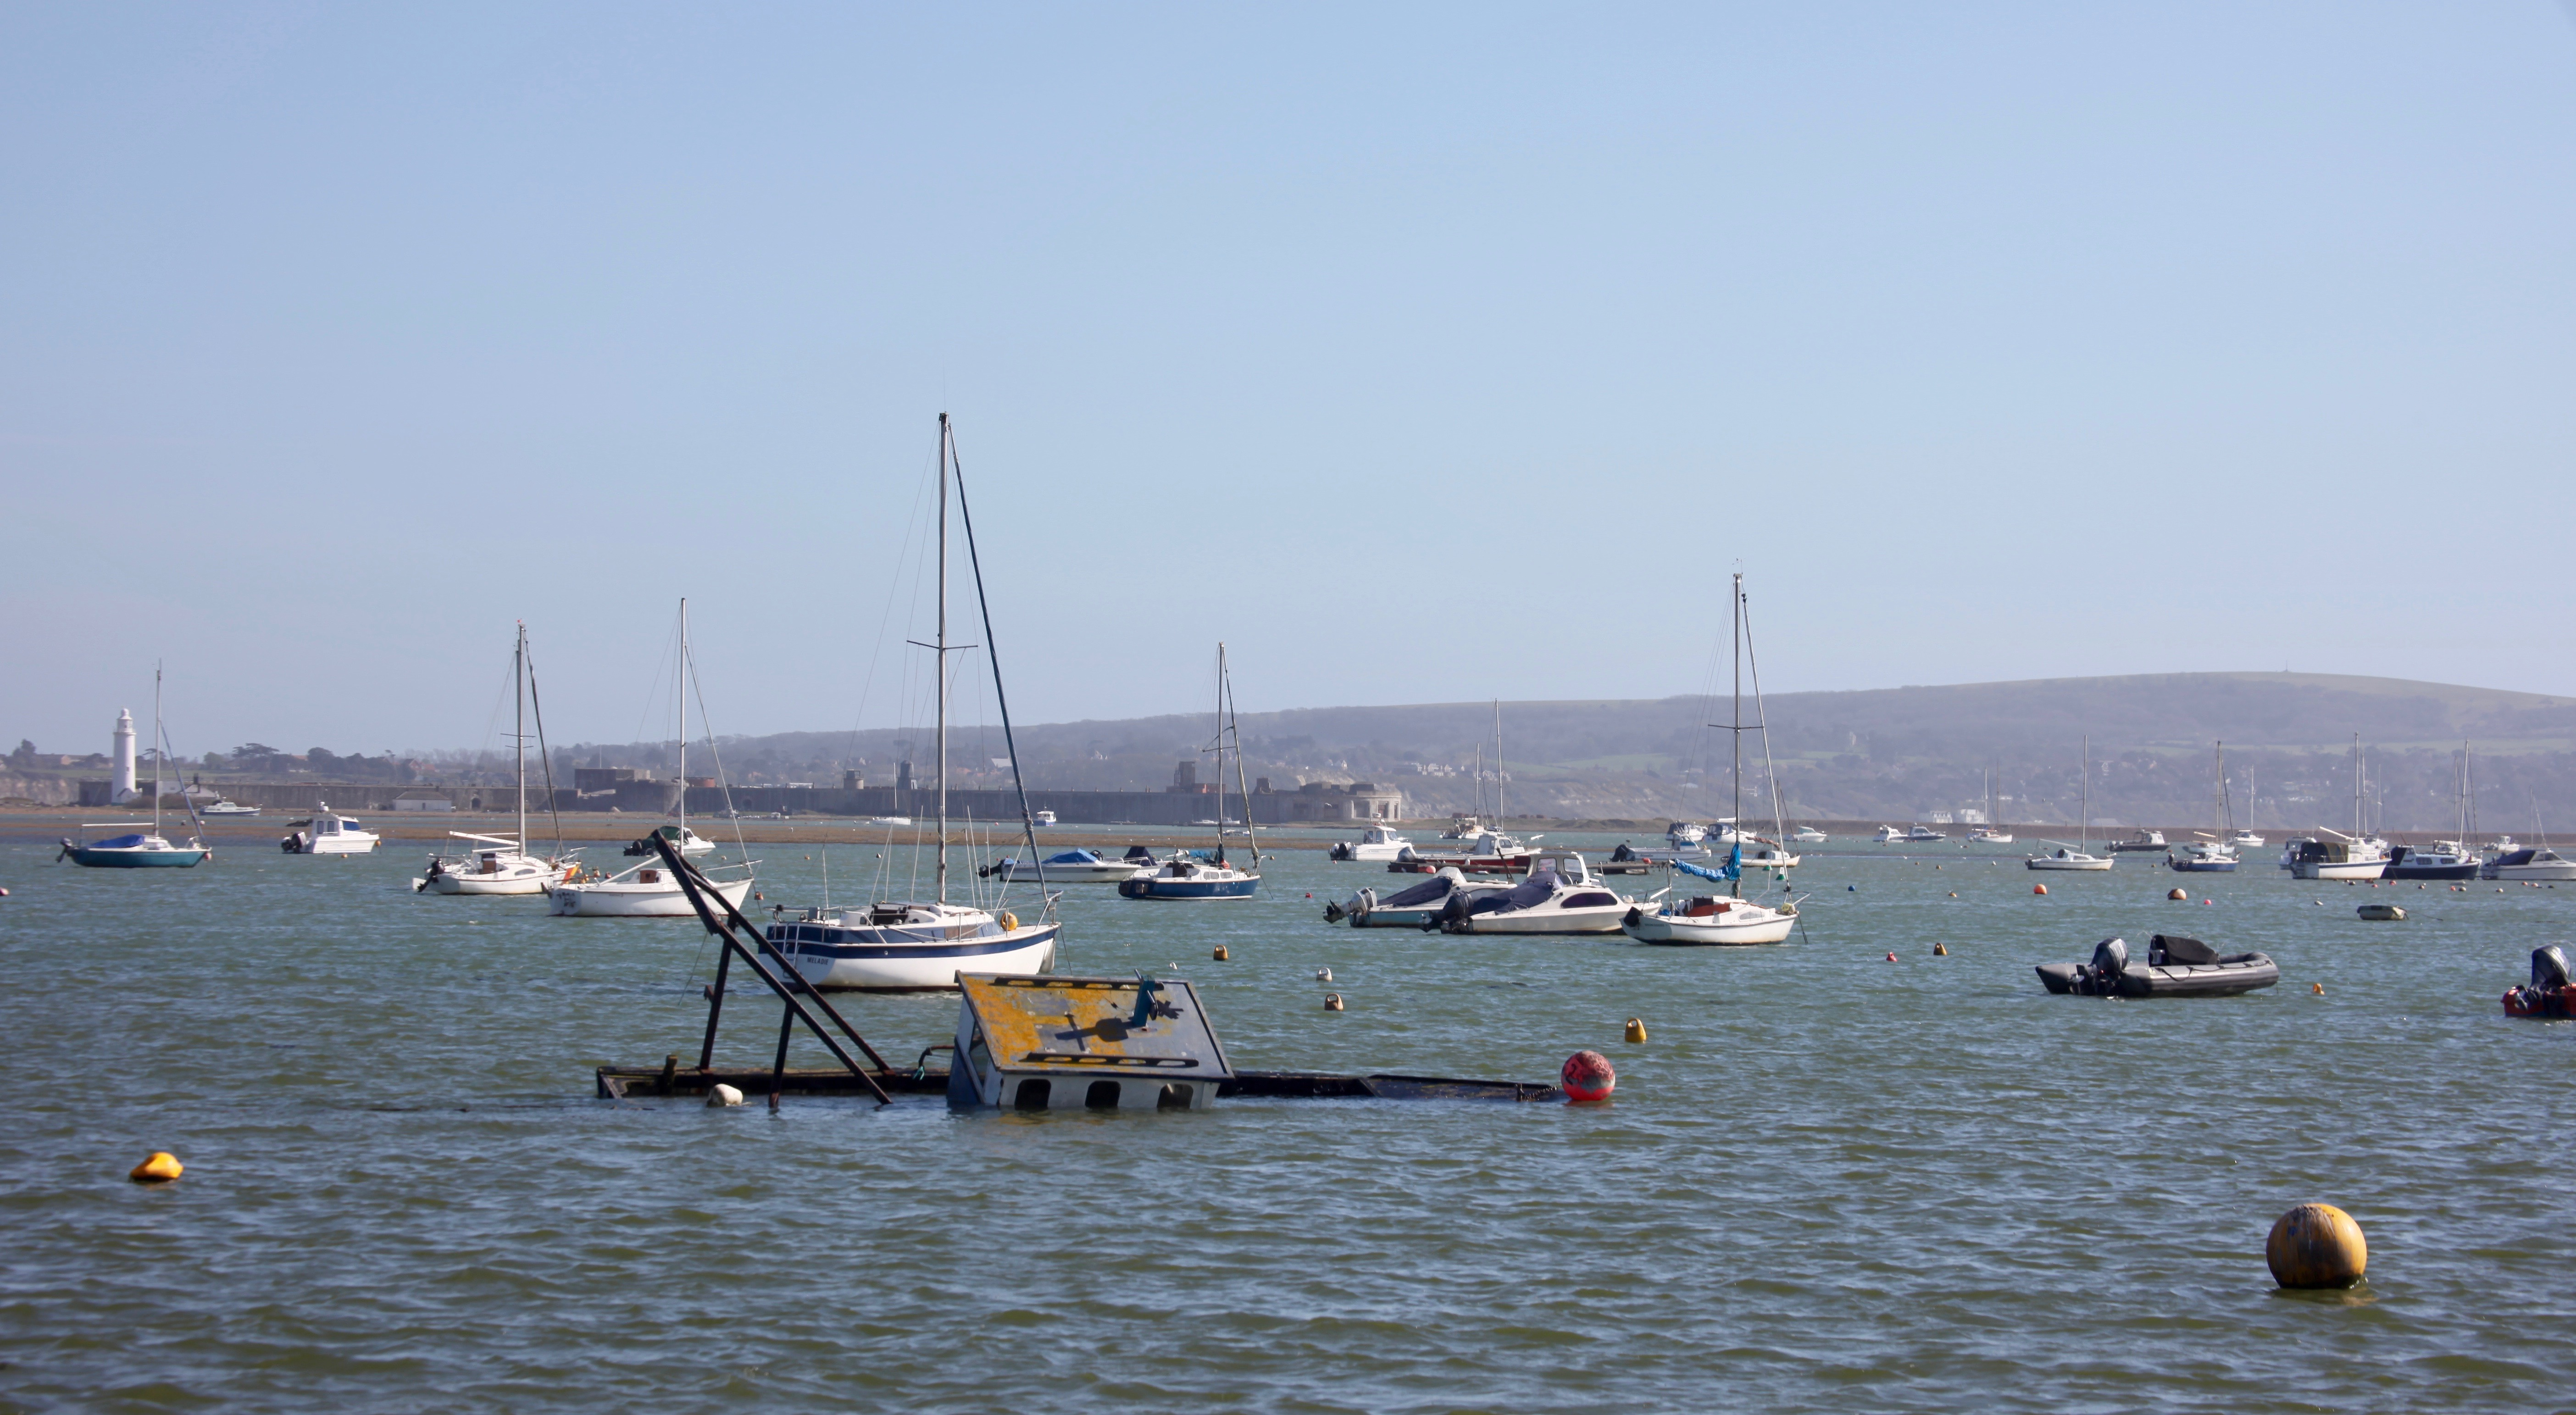 Boats and Hurst lighthouse 1